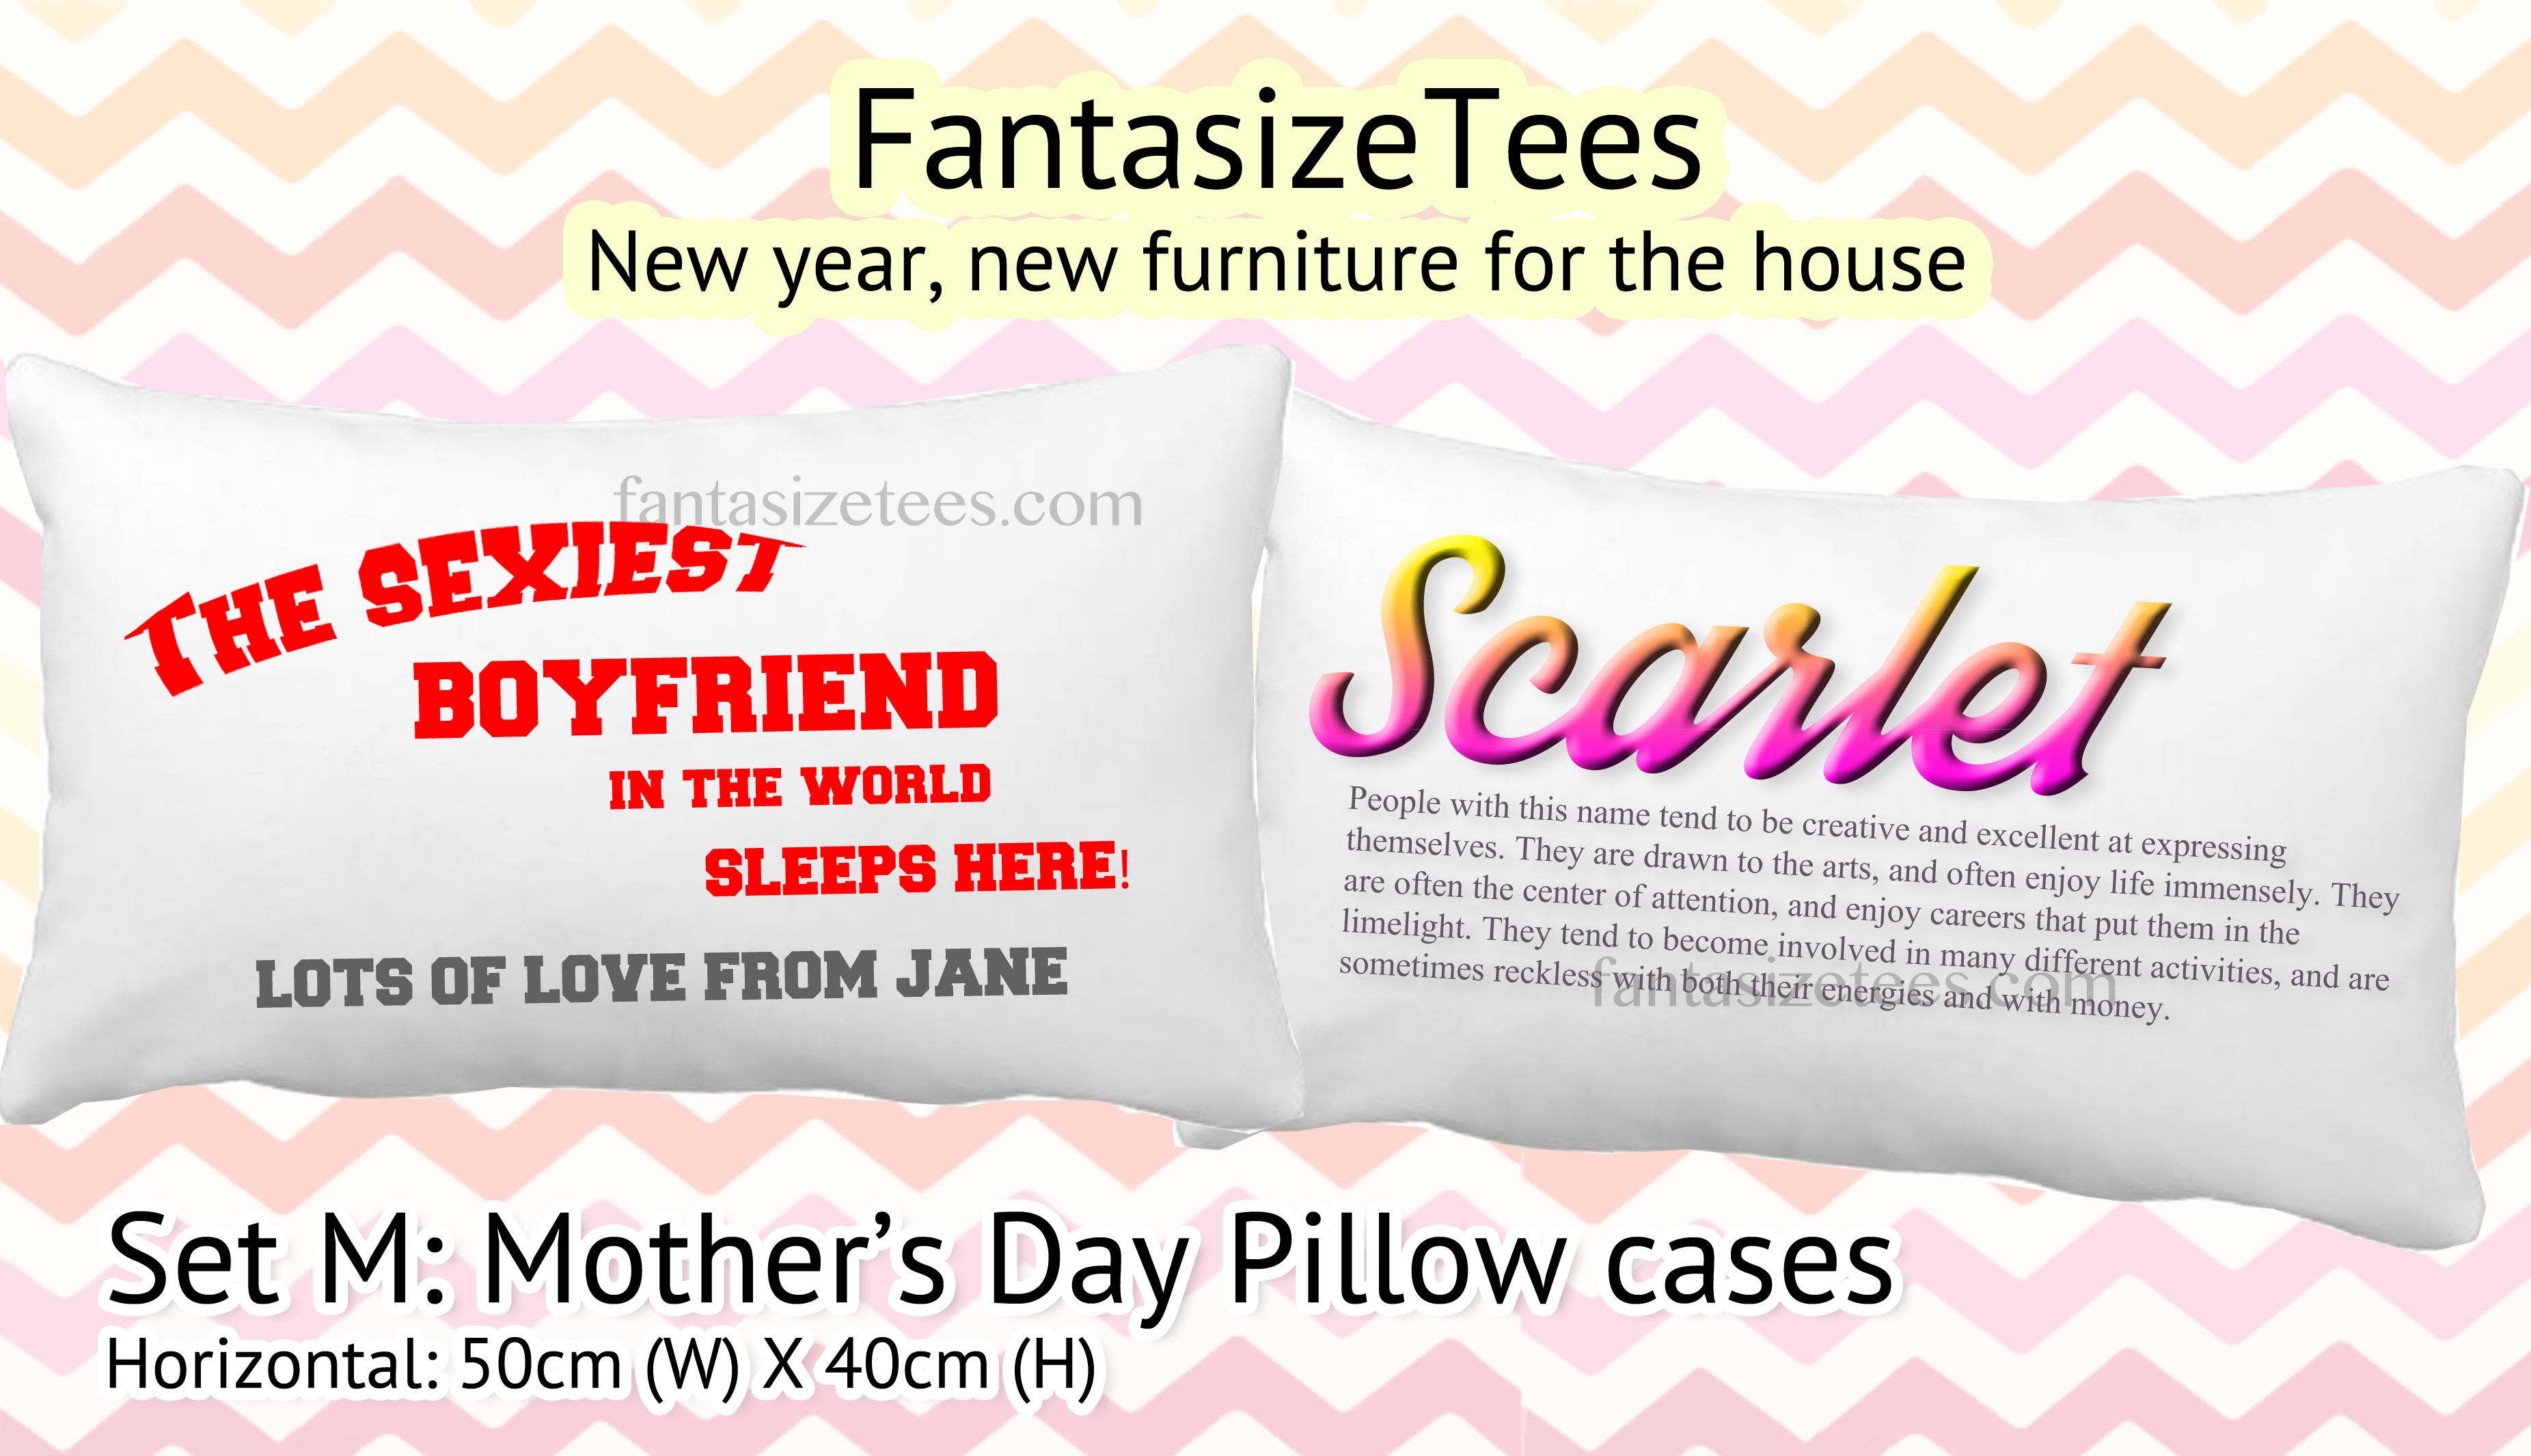 Design Your Own Pillowcase Beautiful Pillowcase Designs For Families And Couplesdesign Your